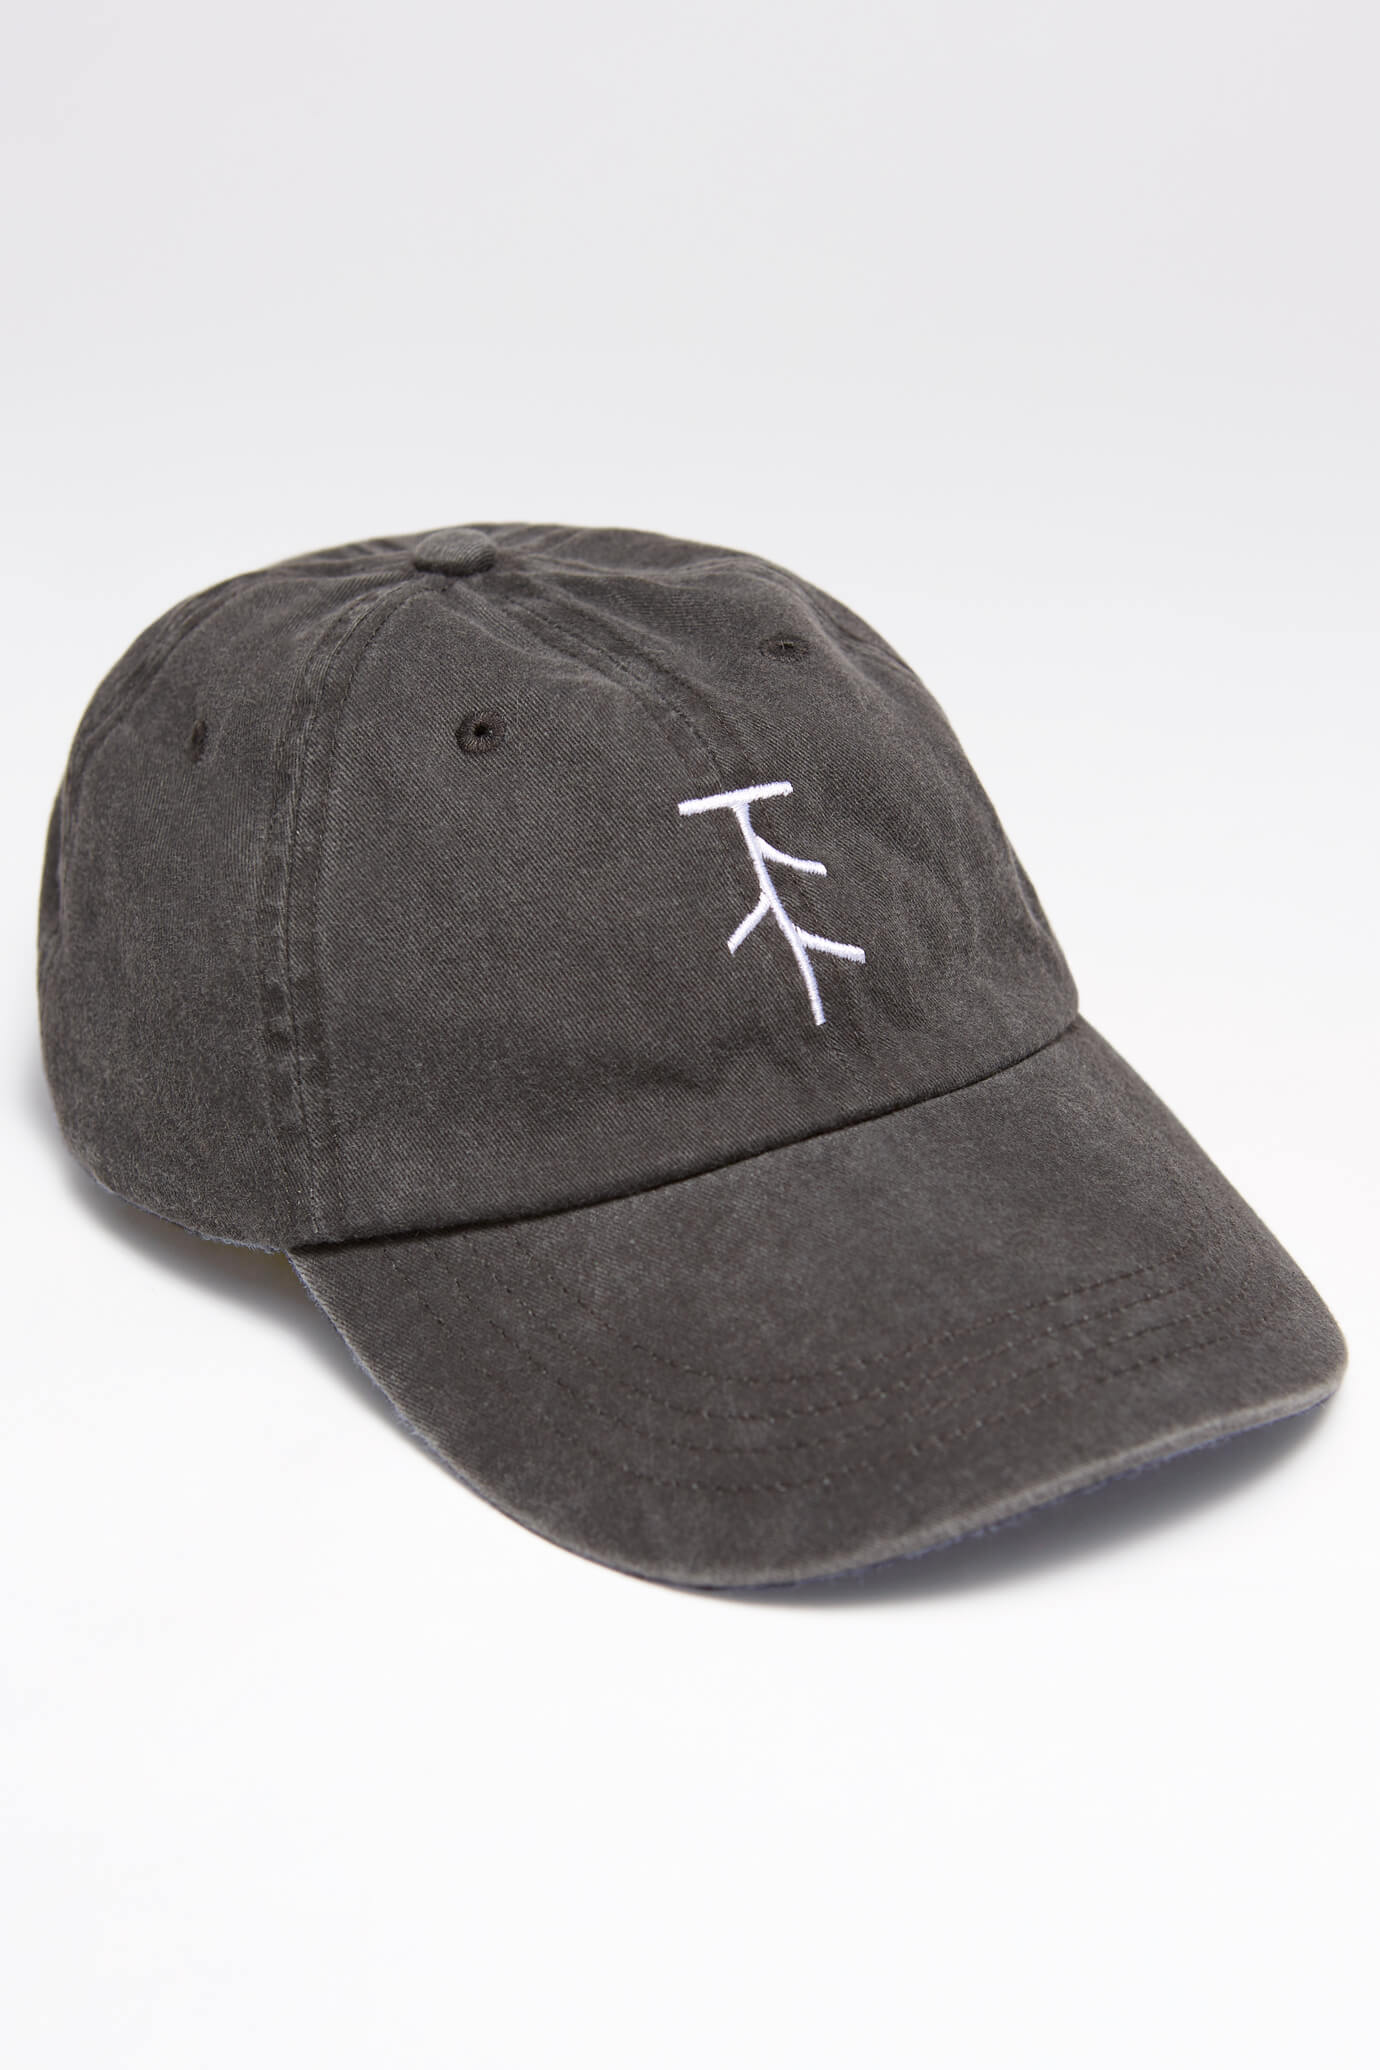 taproot pictures hat in stone gray rooty